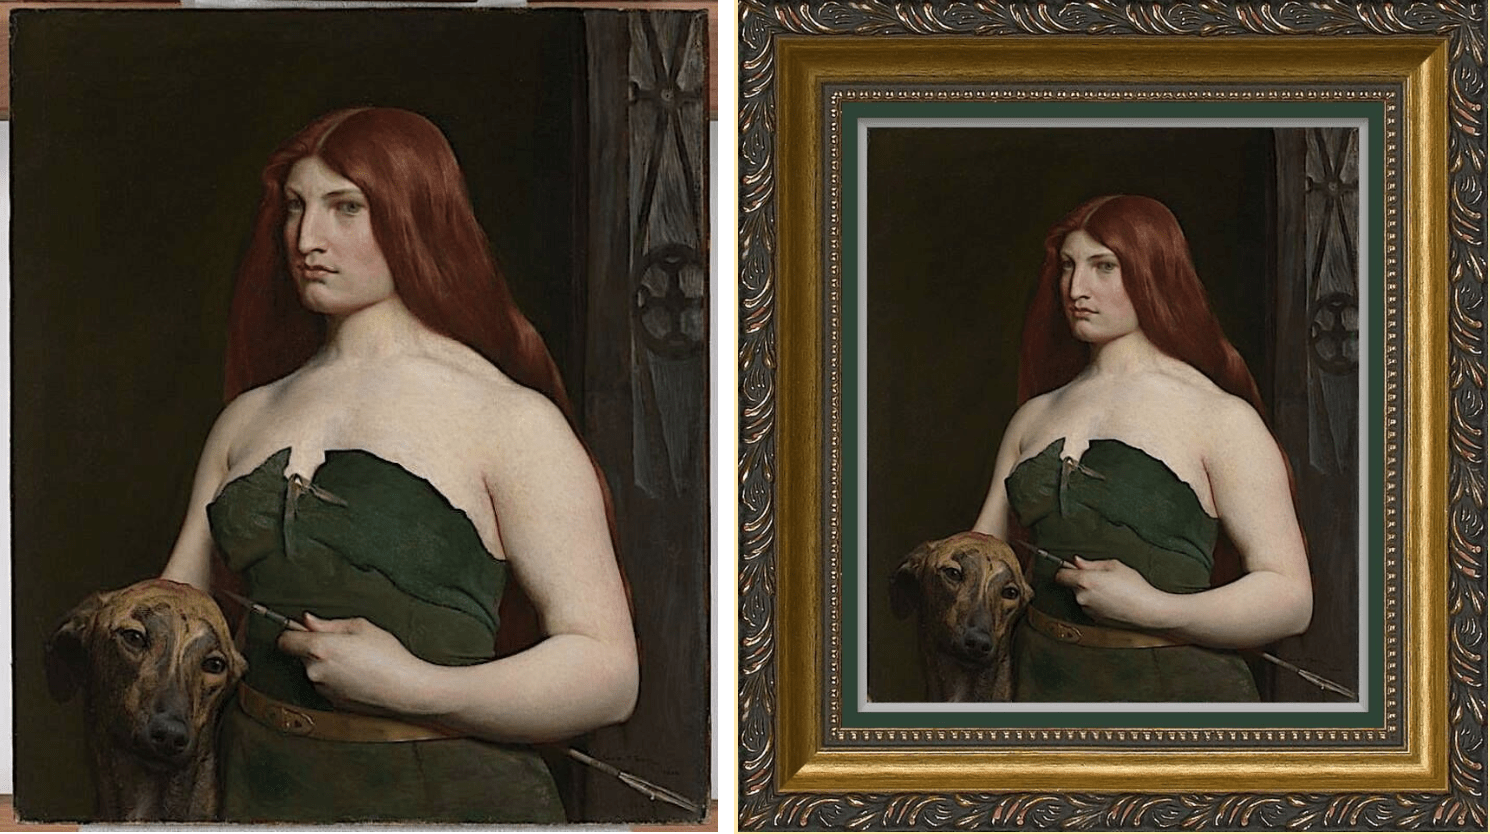 George de Forest Brush's Celtic Huntress (1890) Painting